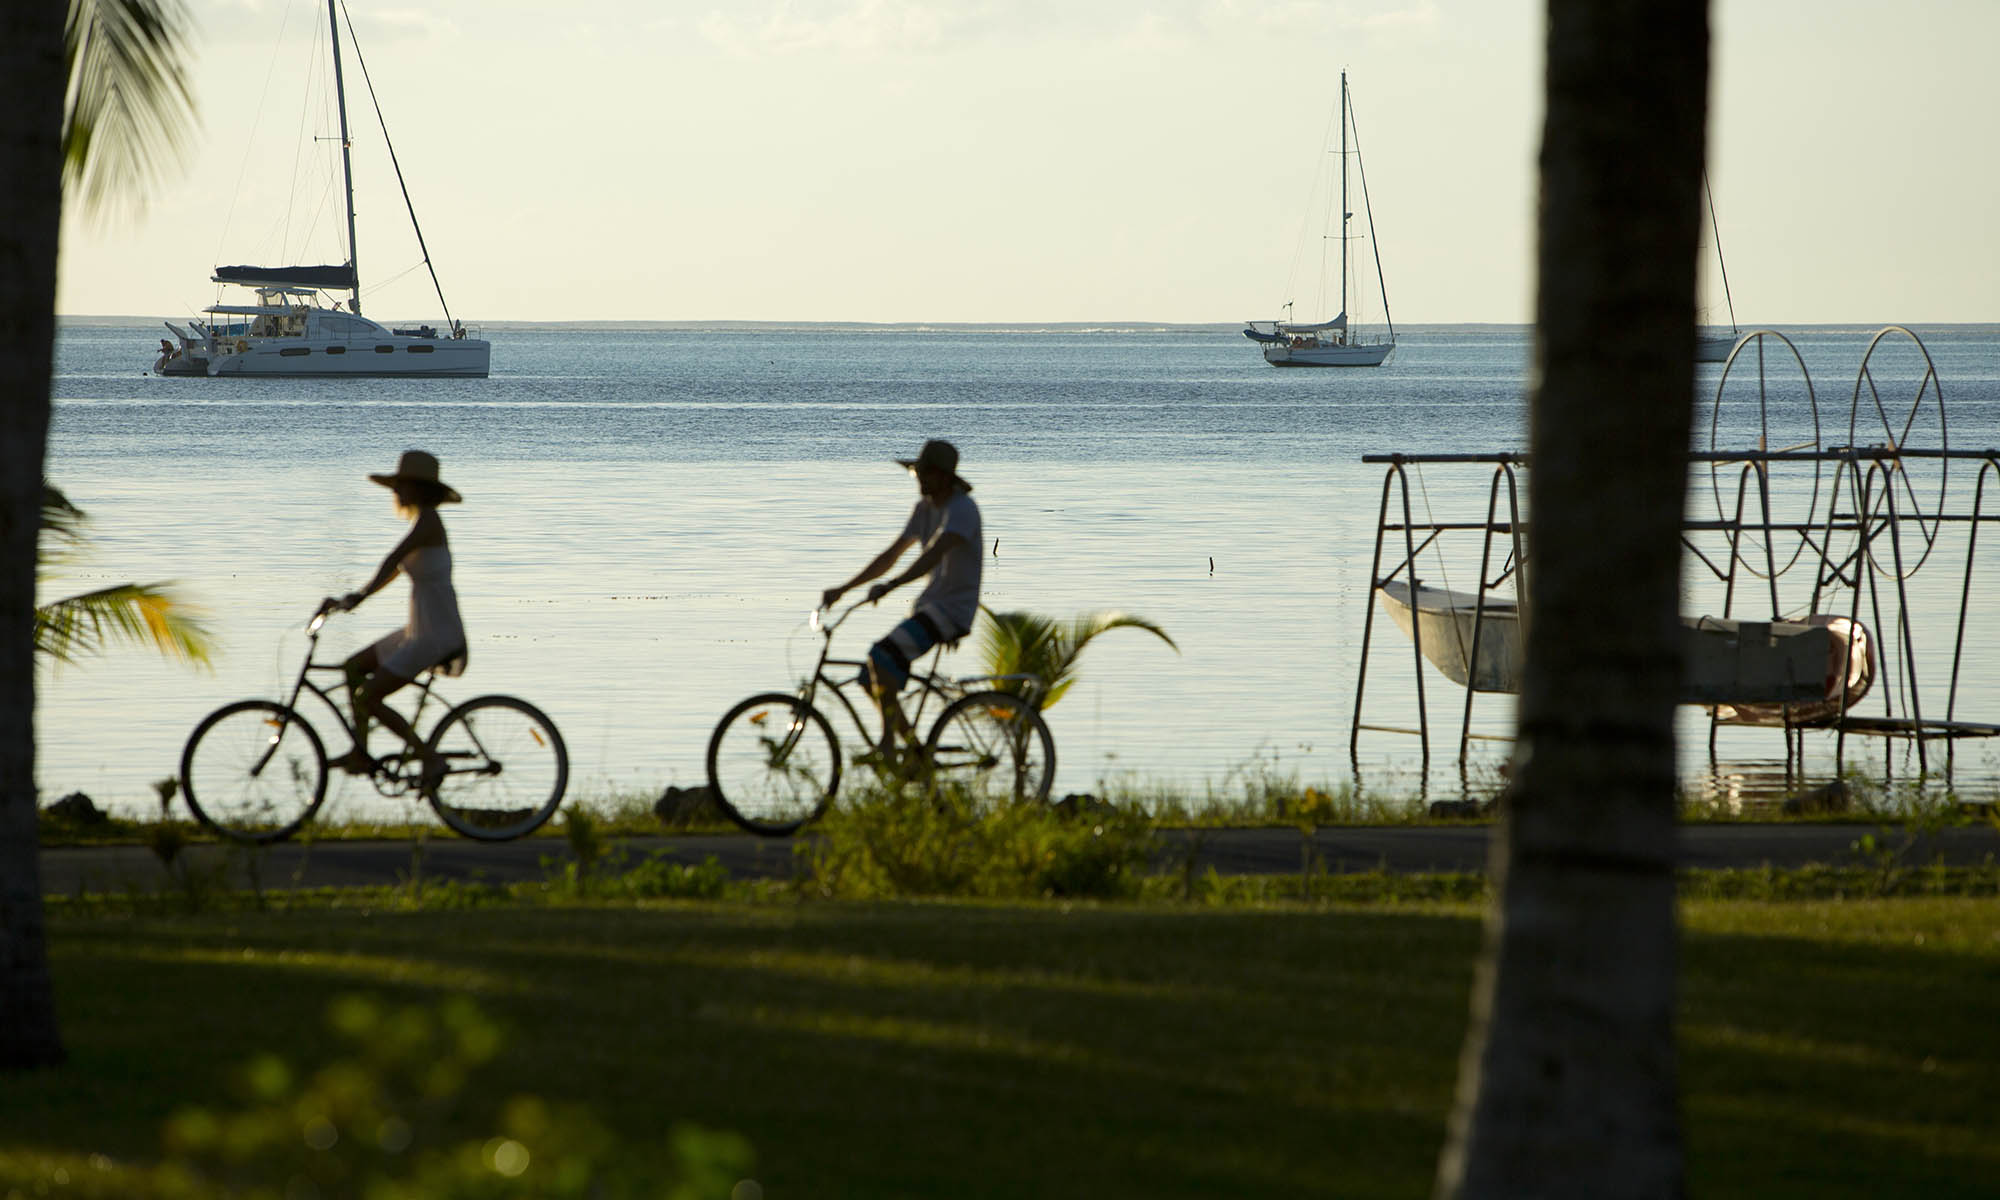 Bicycle Riding on Raiatea